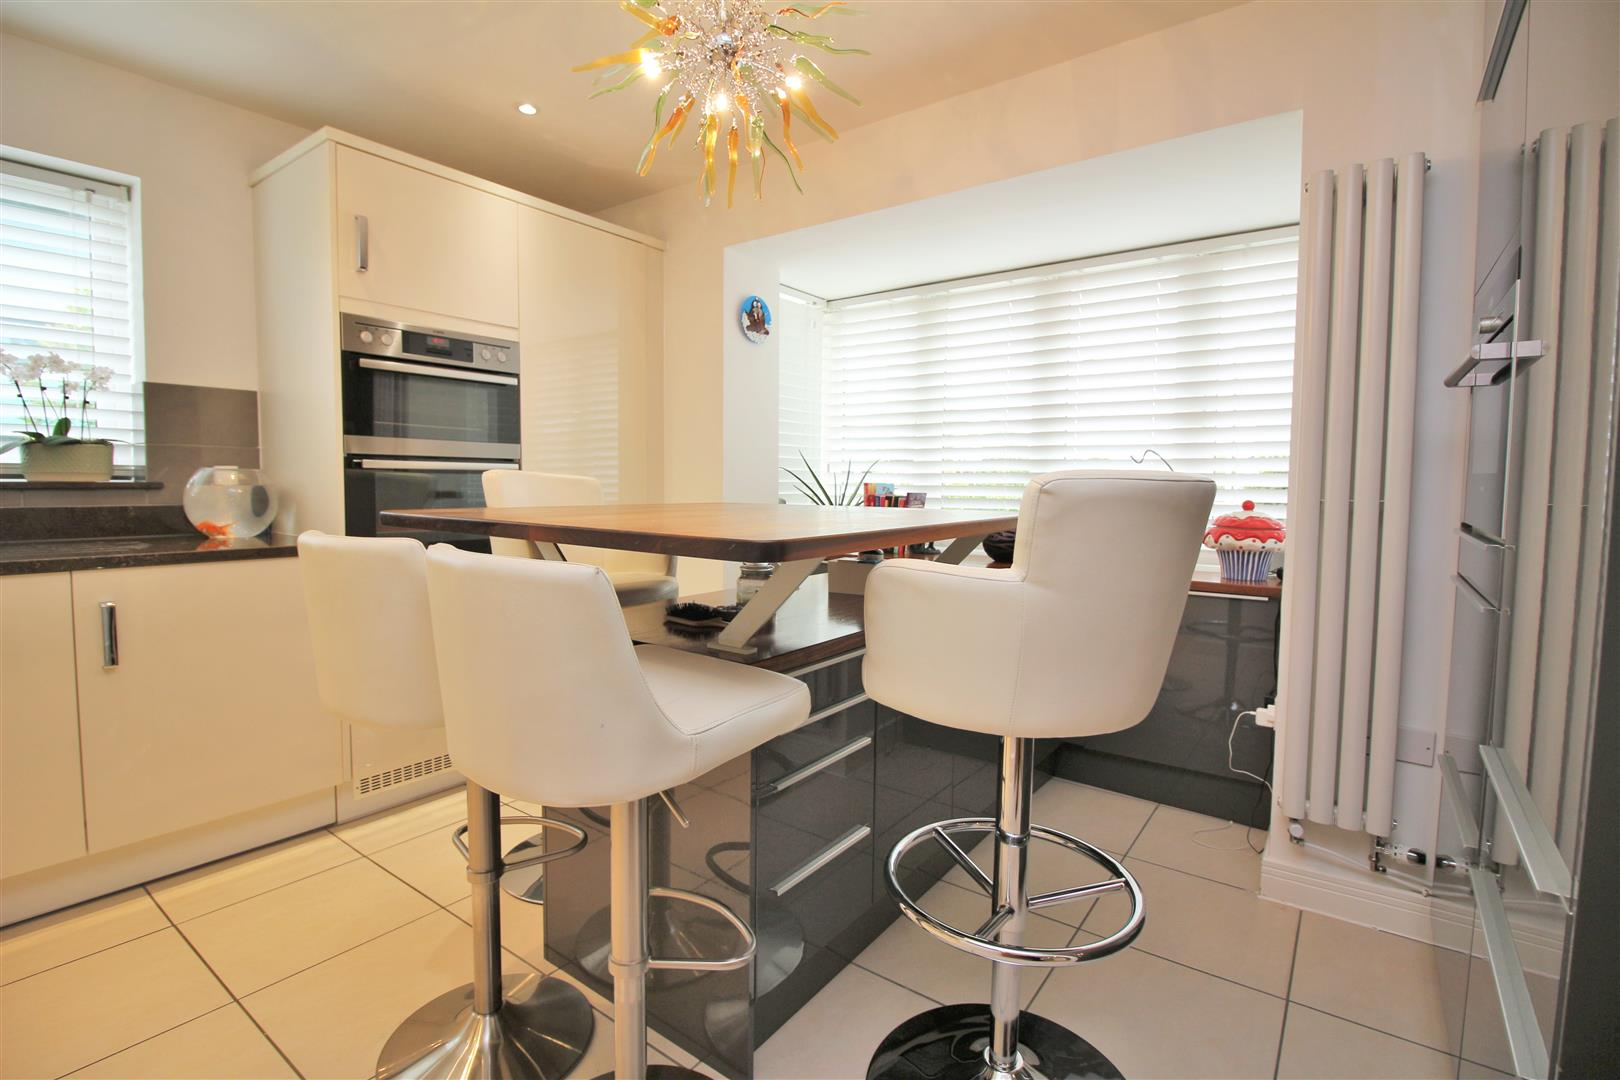 4 bed to rent in Leavesden - (Property Image 6)